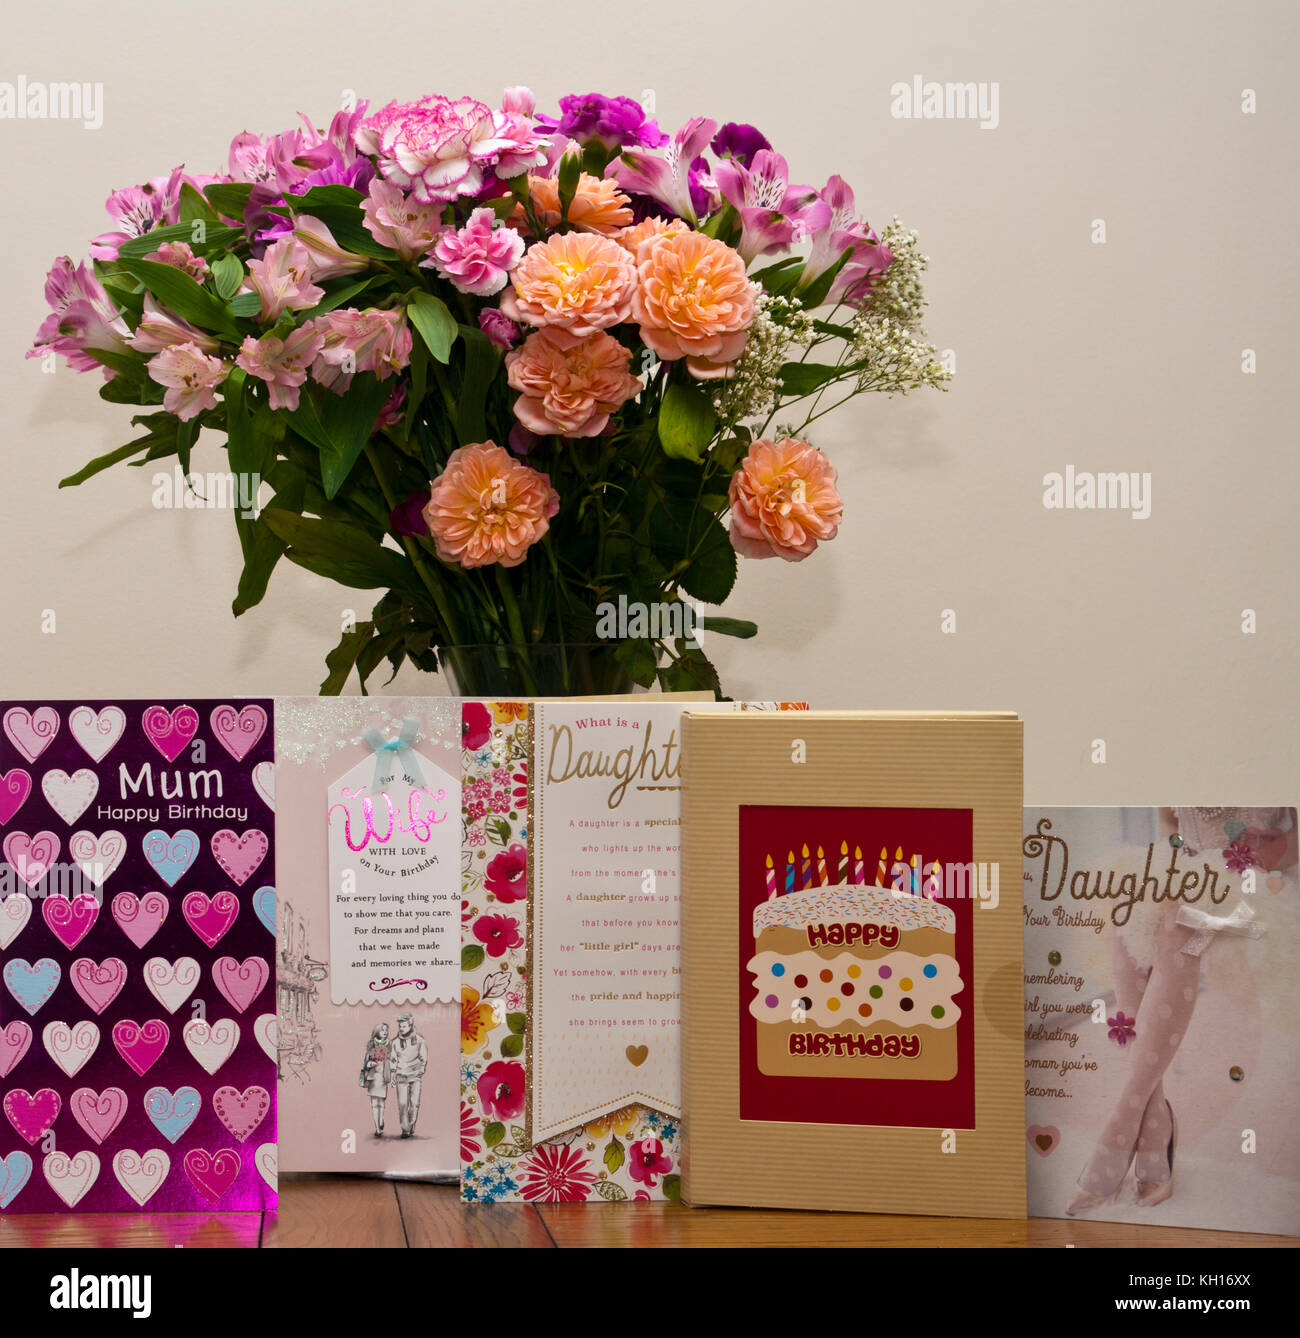 Cards flowers stock photos cards flowers stock images alamy birthday cards with a bunch of flowers in a vase stock image izmirmasajfo